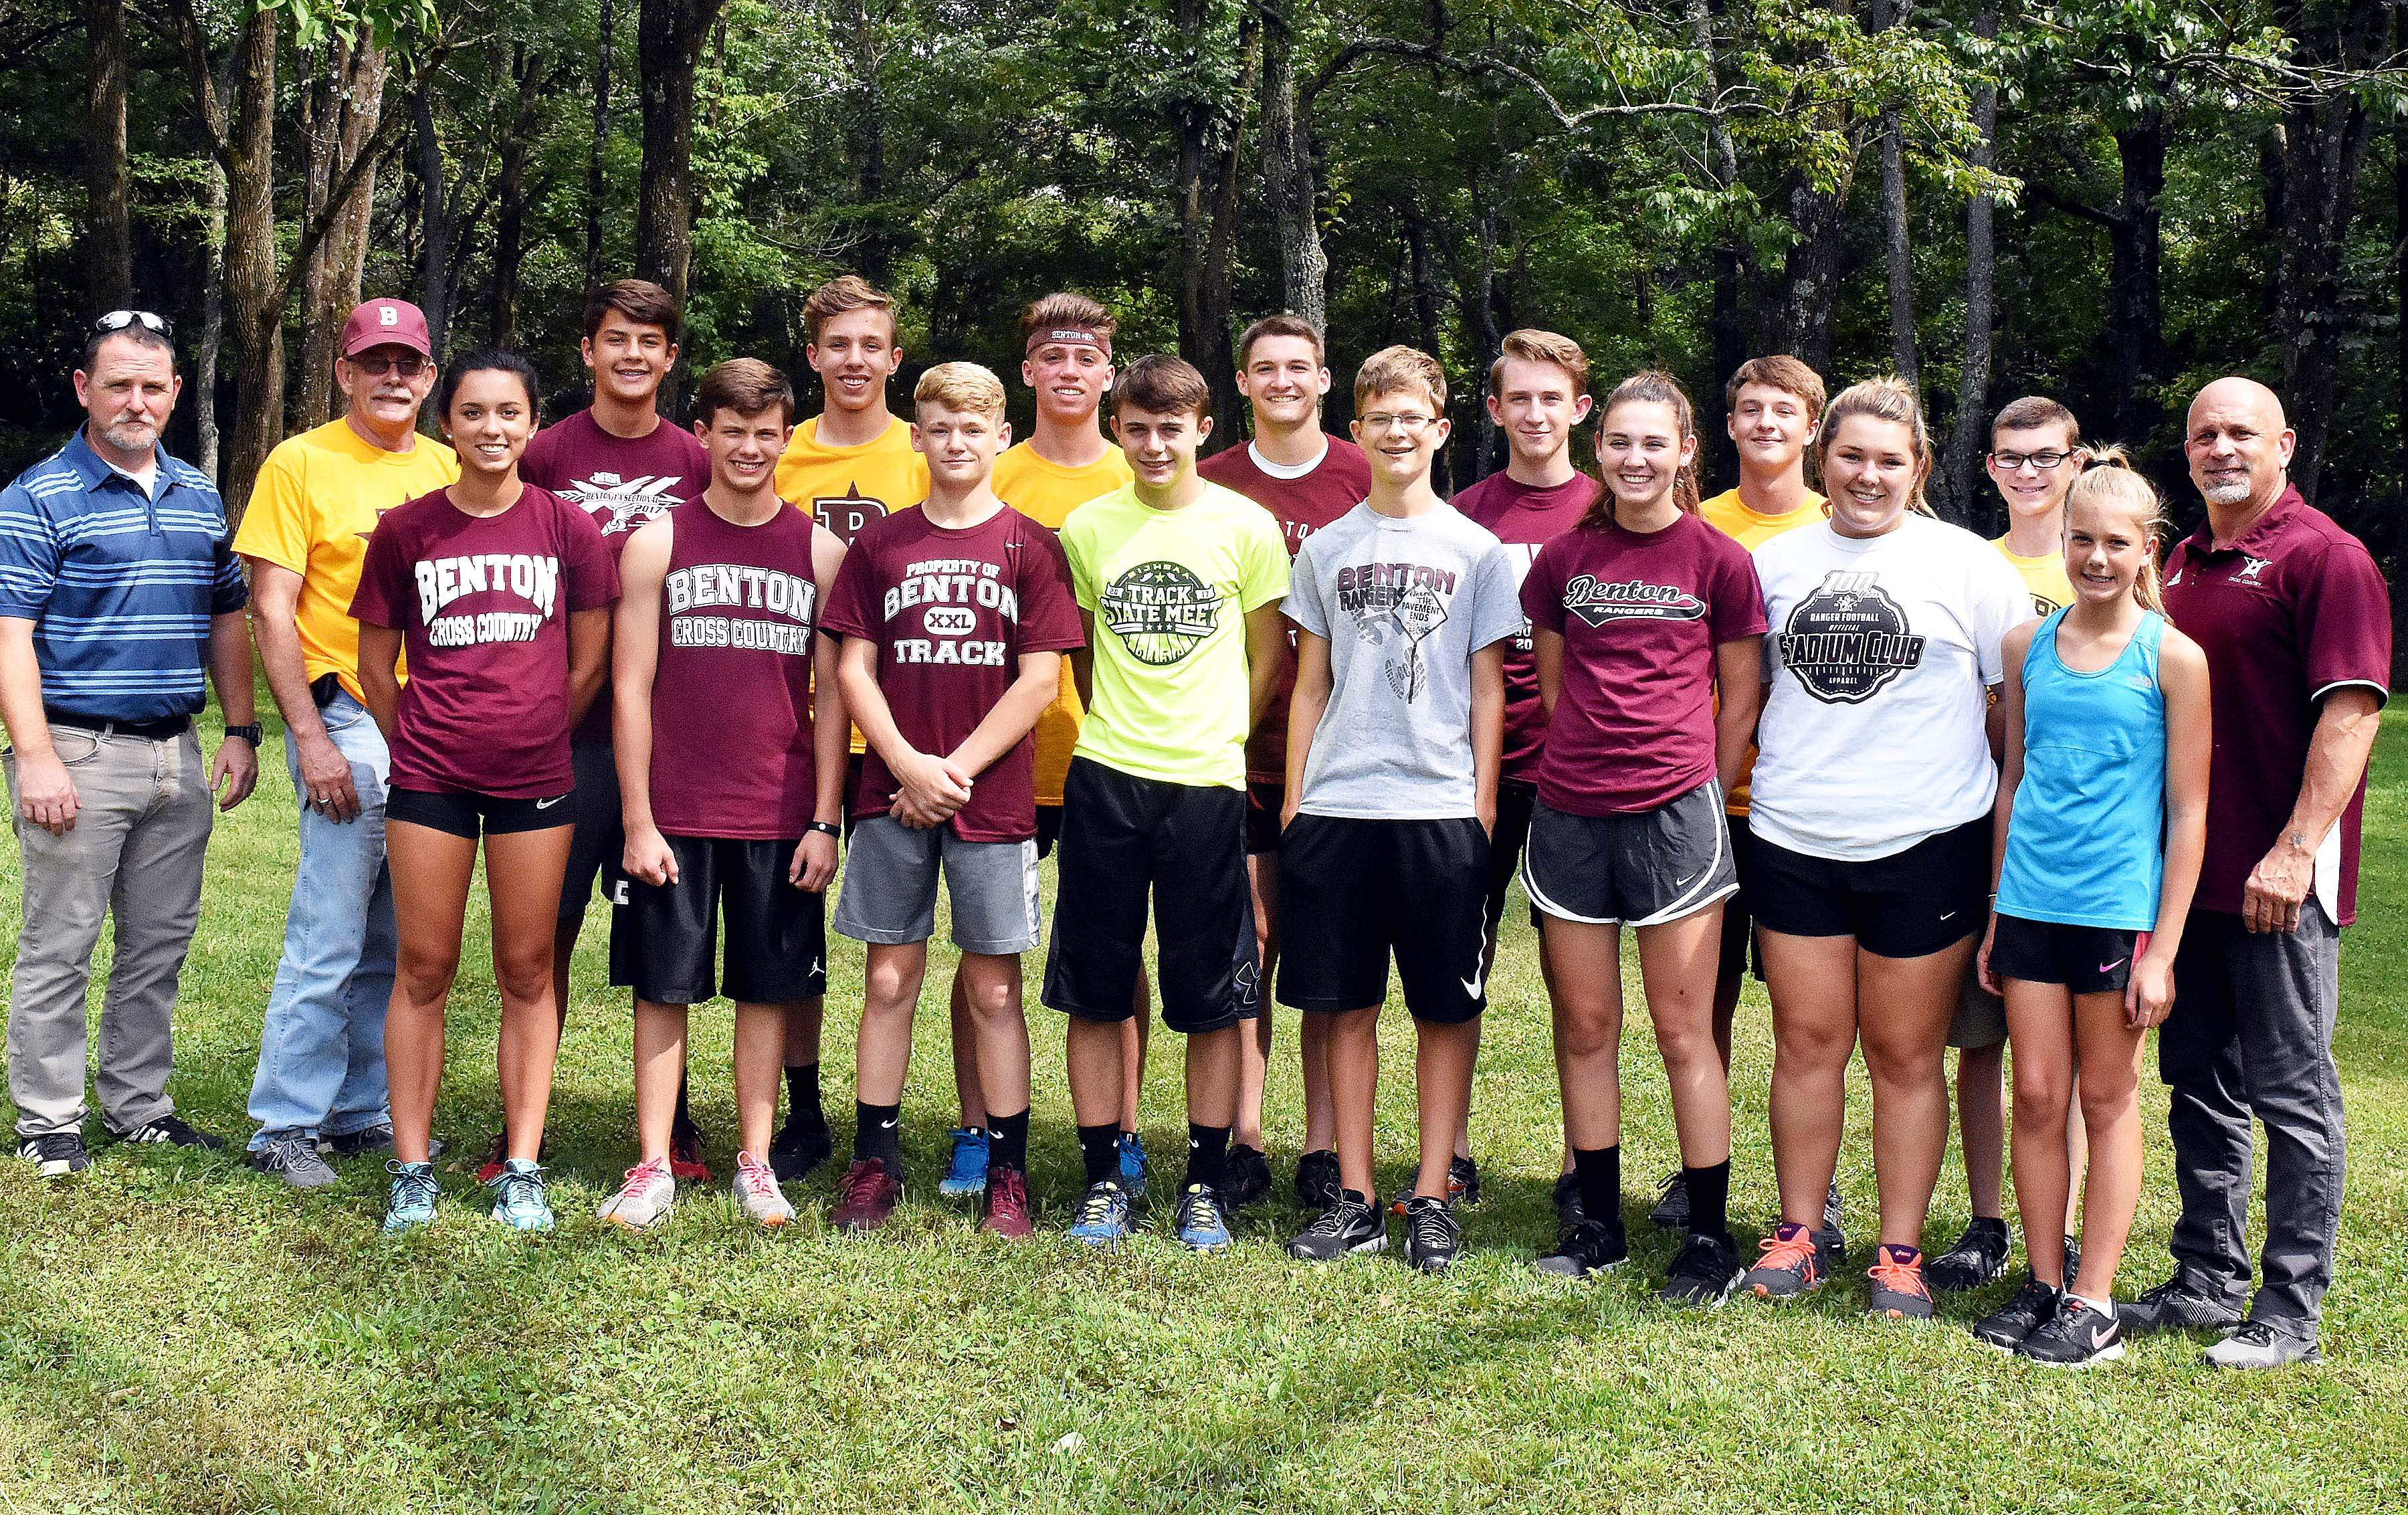 Benton High School will have a coed cross country team this fall. Team members, front row from left include: Mia McLain, Jay Simmons, Kaden Beatle, Chase Owens, James Tindle, Addisyn Miller, Katy Johnston and Haley Wallace. Back row: Assistant coach John Kreiger, assistant coach George Ward, Parker Sieveking, Joey Sample, Avery Potter, Mason Wills, Ethan Kreiger, Brady Gischer, manager Gage Owens and head coach Brent McLain.